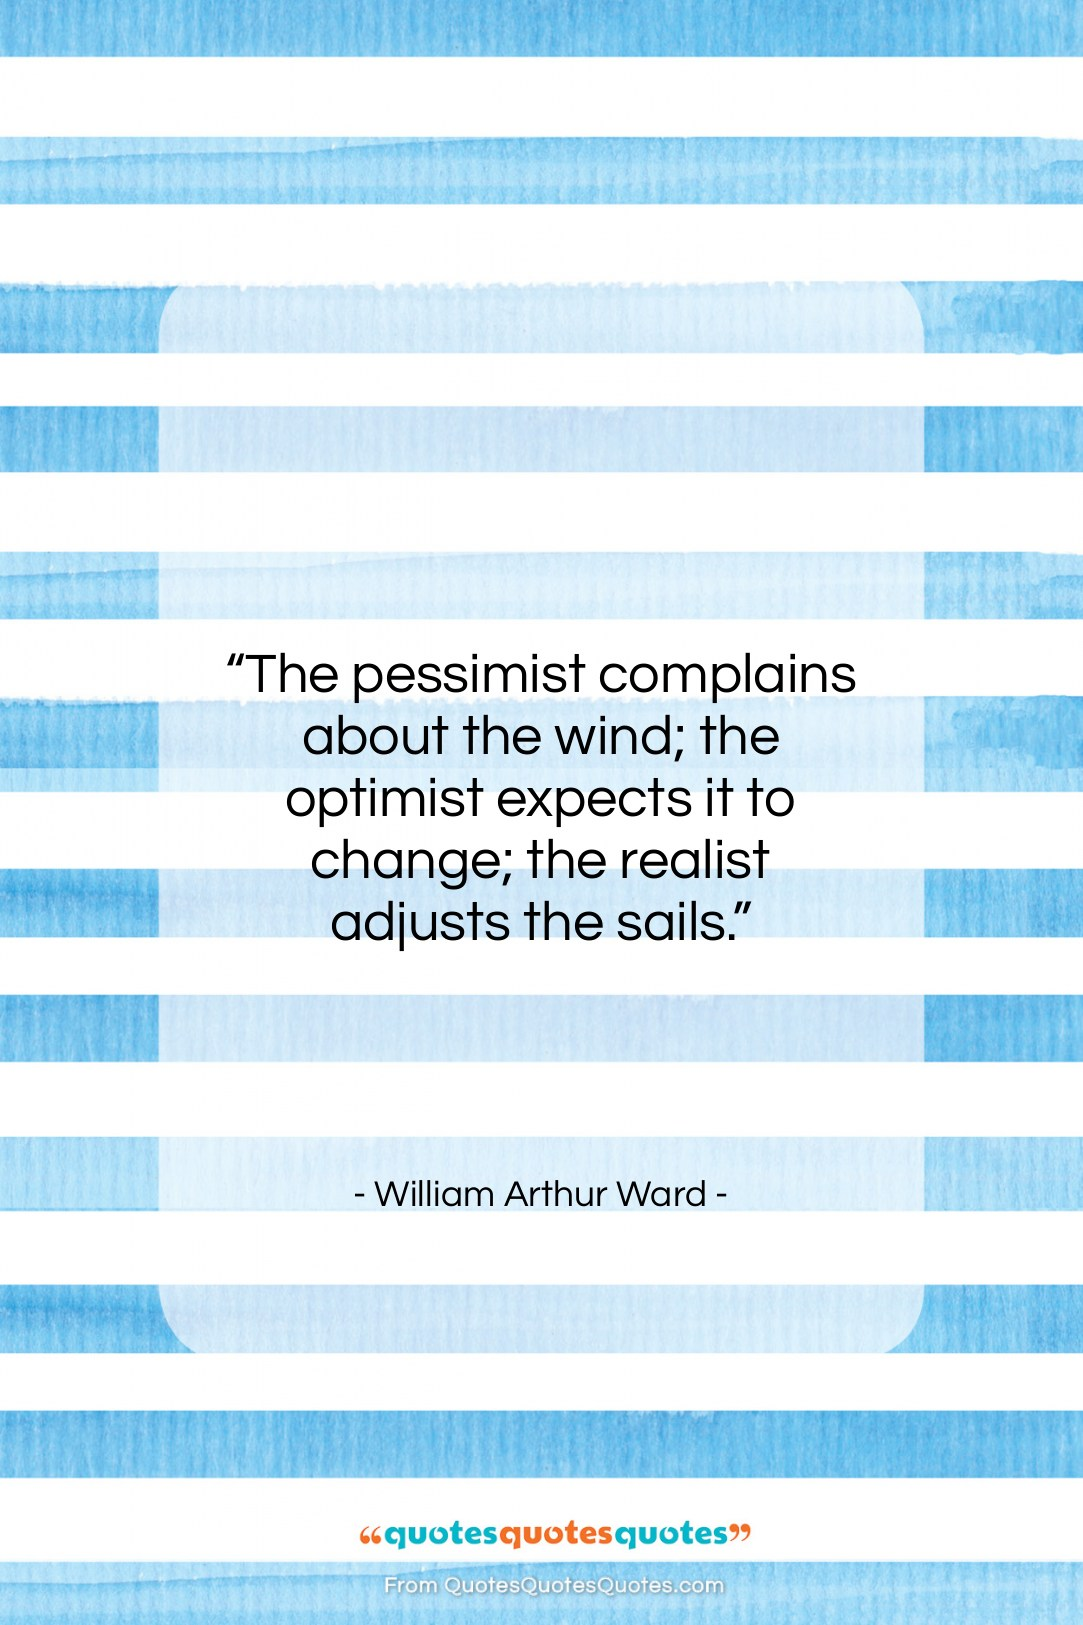 """William Arthur Ward quote: """"The pessimist complains about the wind; the…""""- at QuotesQuotesQuotes.com"""